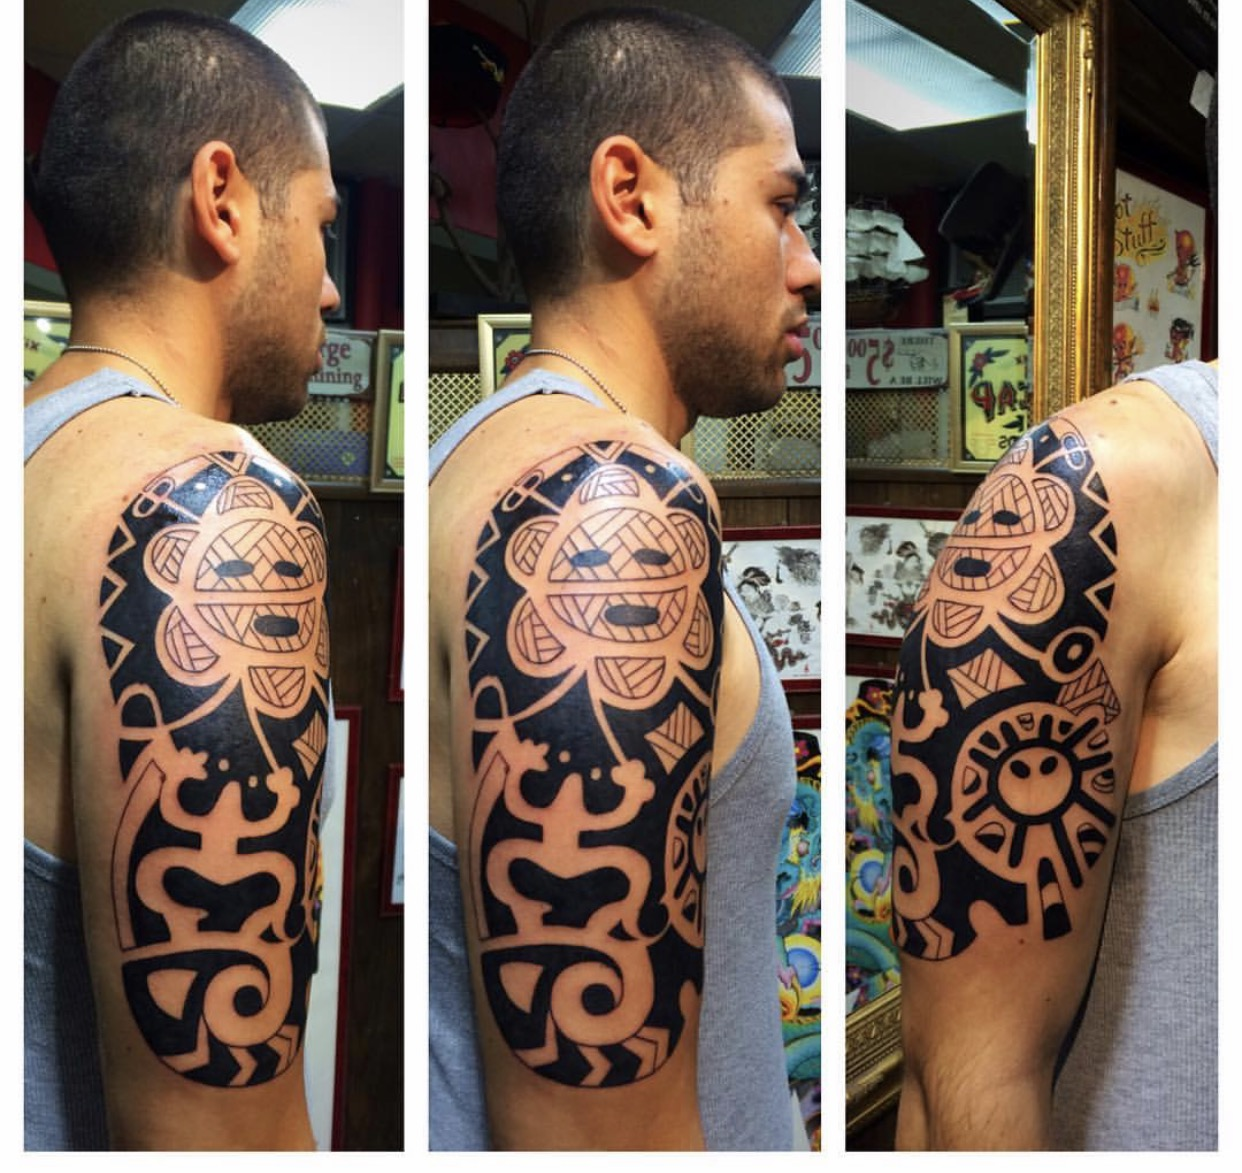 Taino Tattoo by The Red Parlour Tattoo &